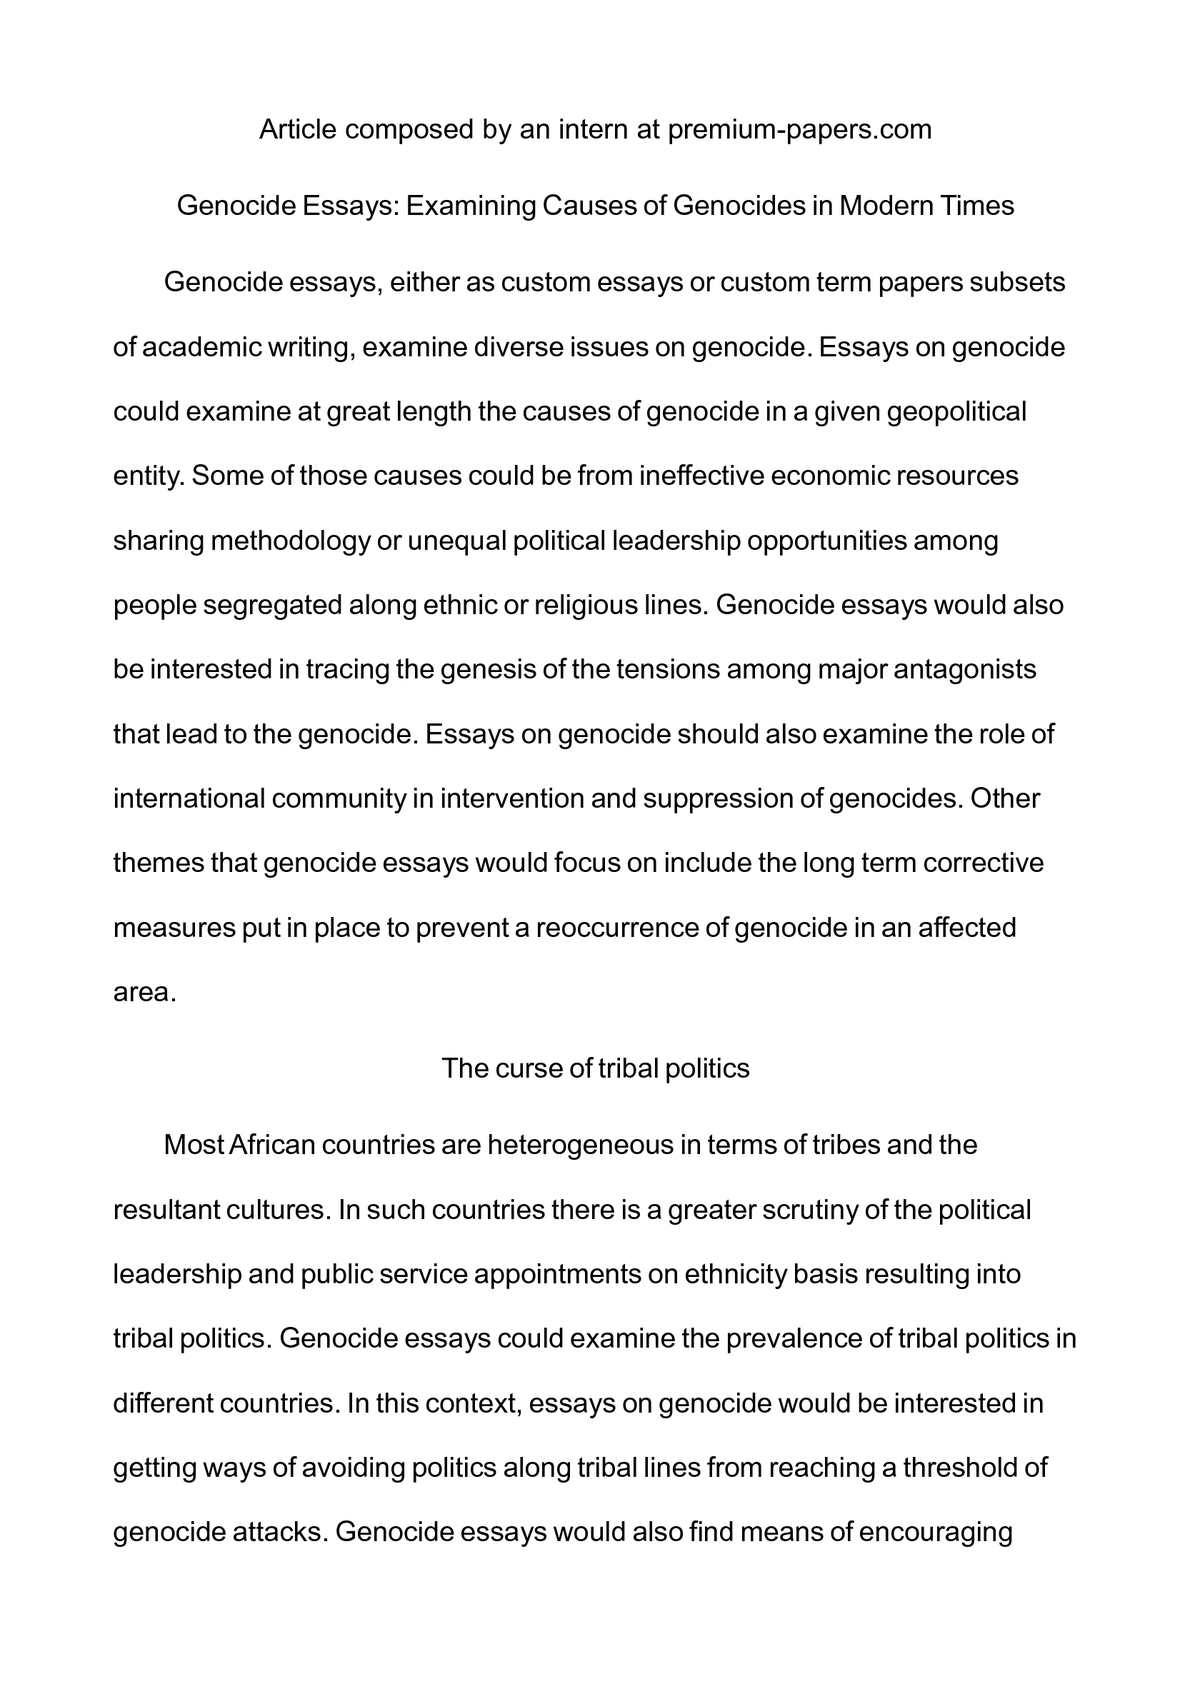 how to prevent genocide essay